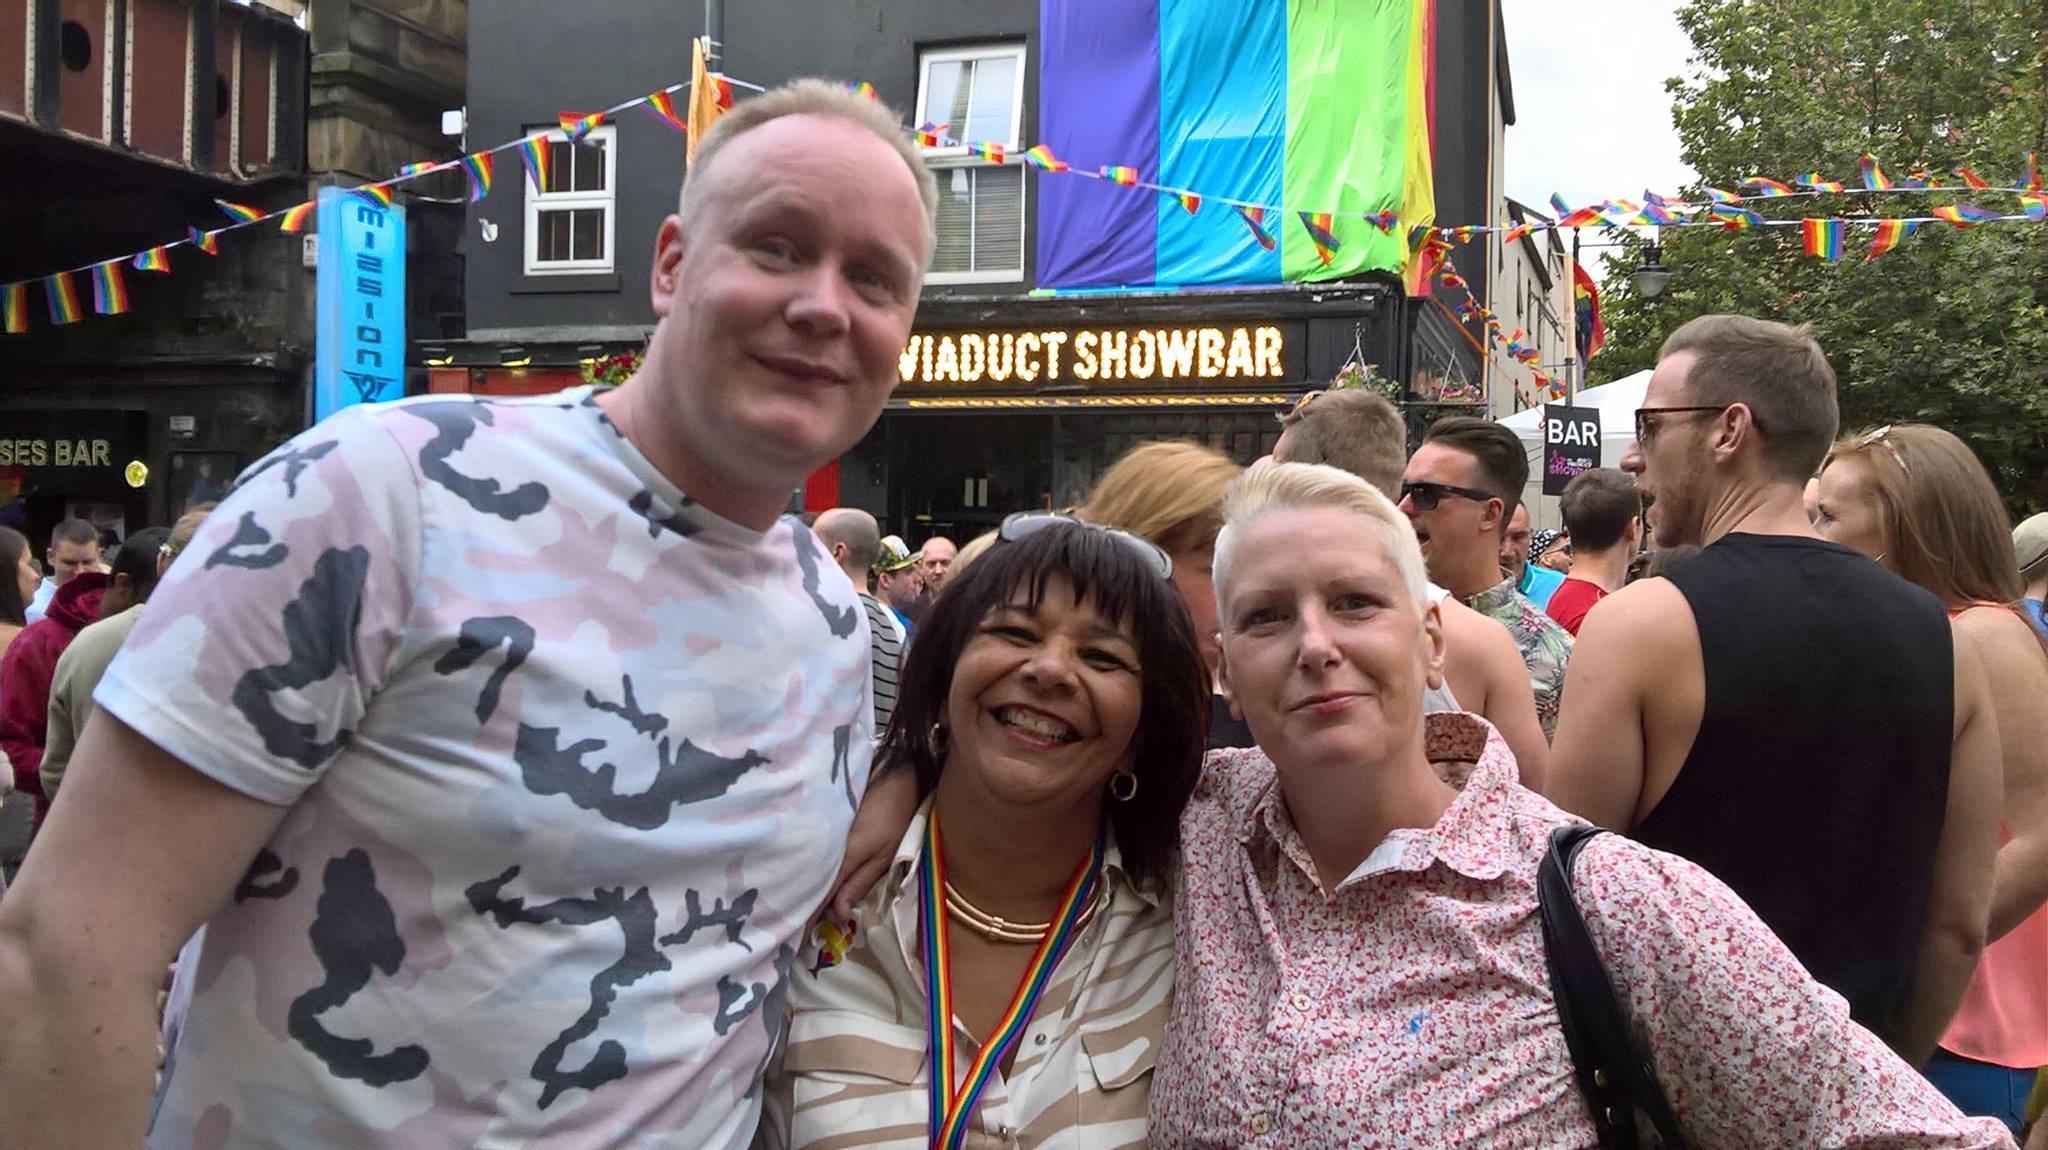 Rosie pictured center enjoying Leeds Pride with friends